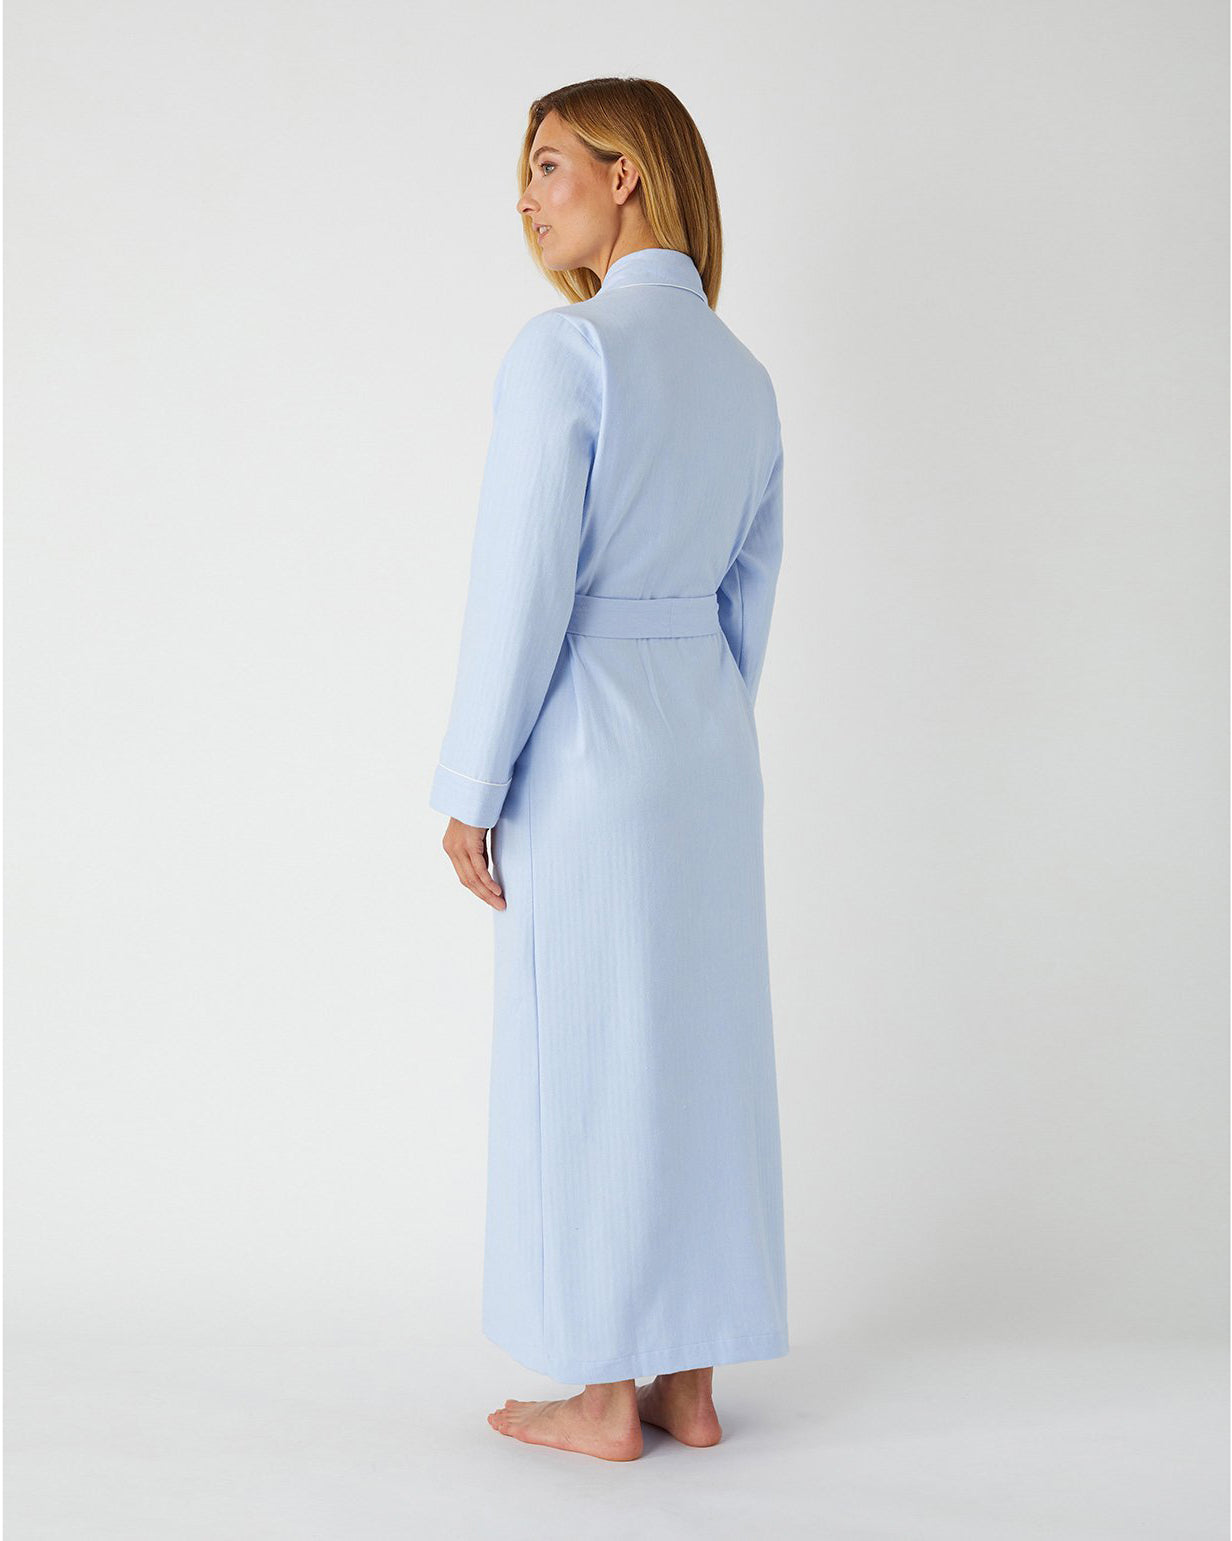 Brushed Cotton Blue Herringbone Gown | Bonsoir of London